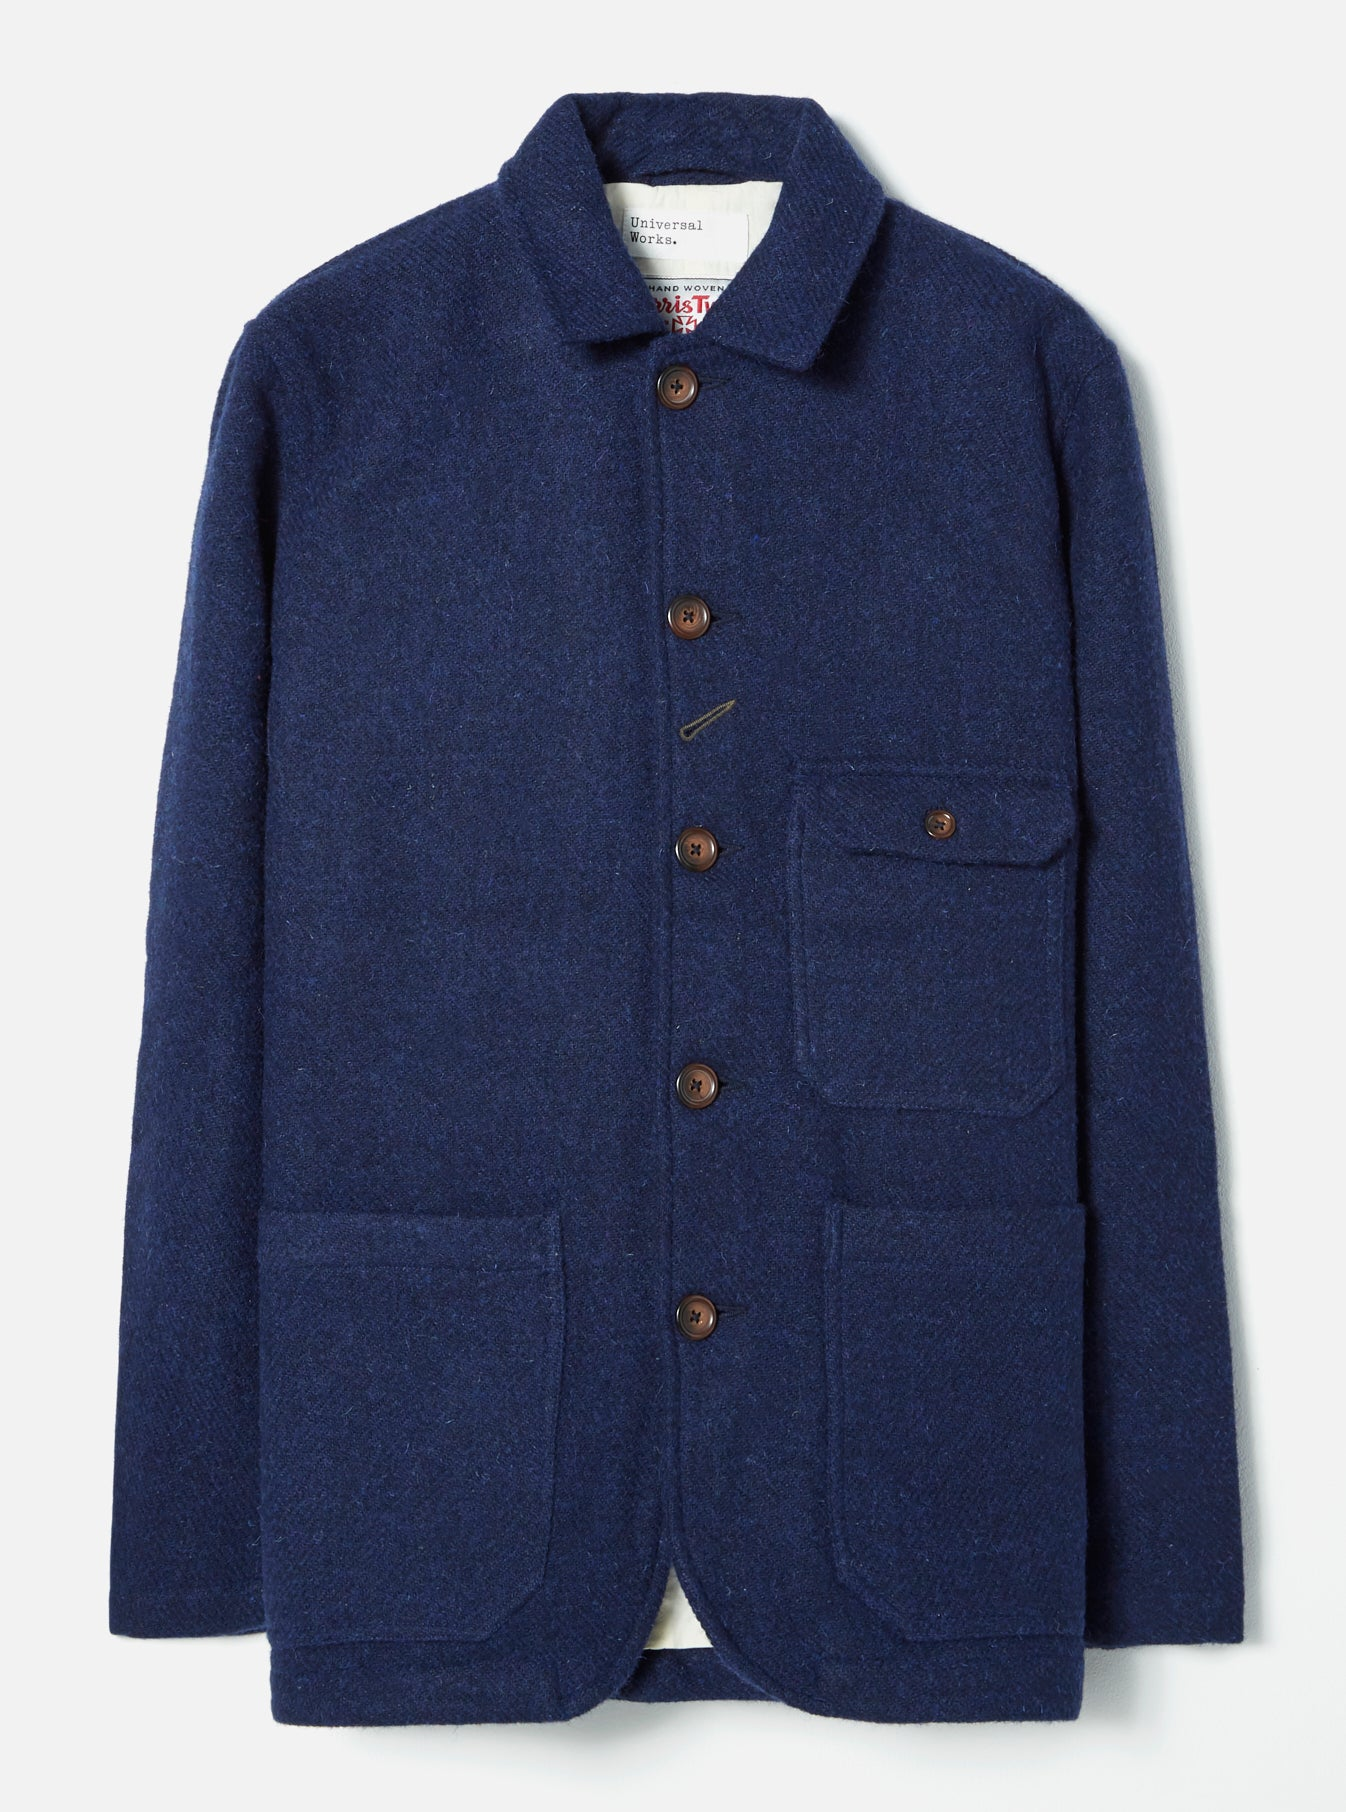 Universal Works Norfolk Bakers Jacket in Indigo LW Harris Tweed